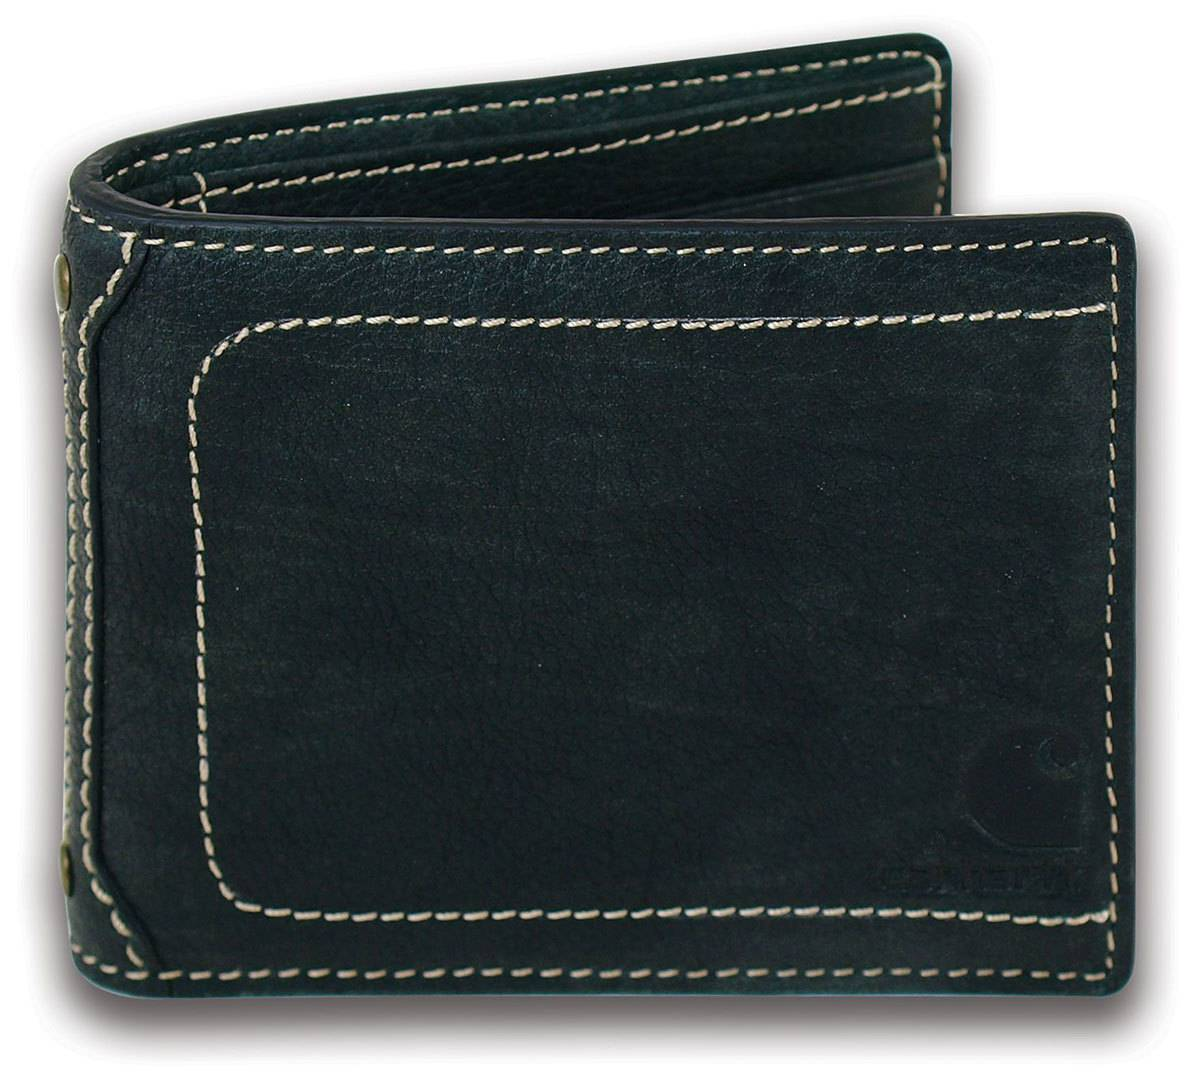 Carhartt Pebble Pass Case Monedero Negro un tamaño